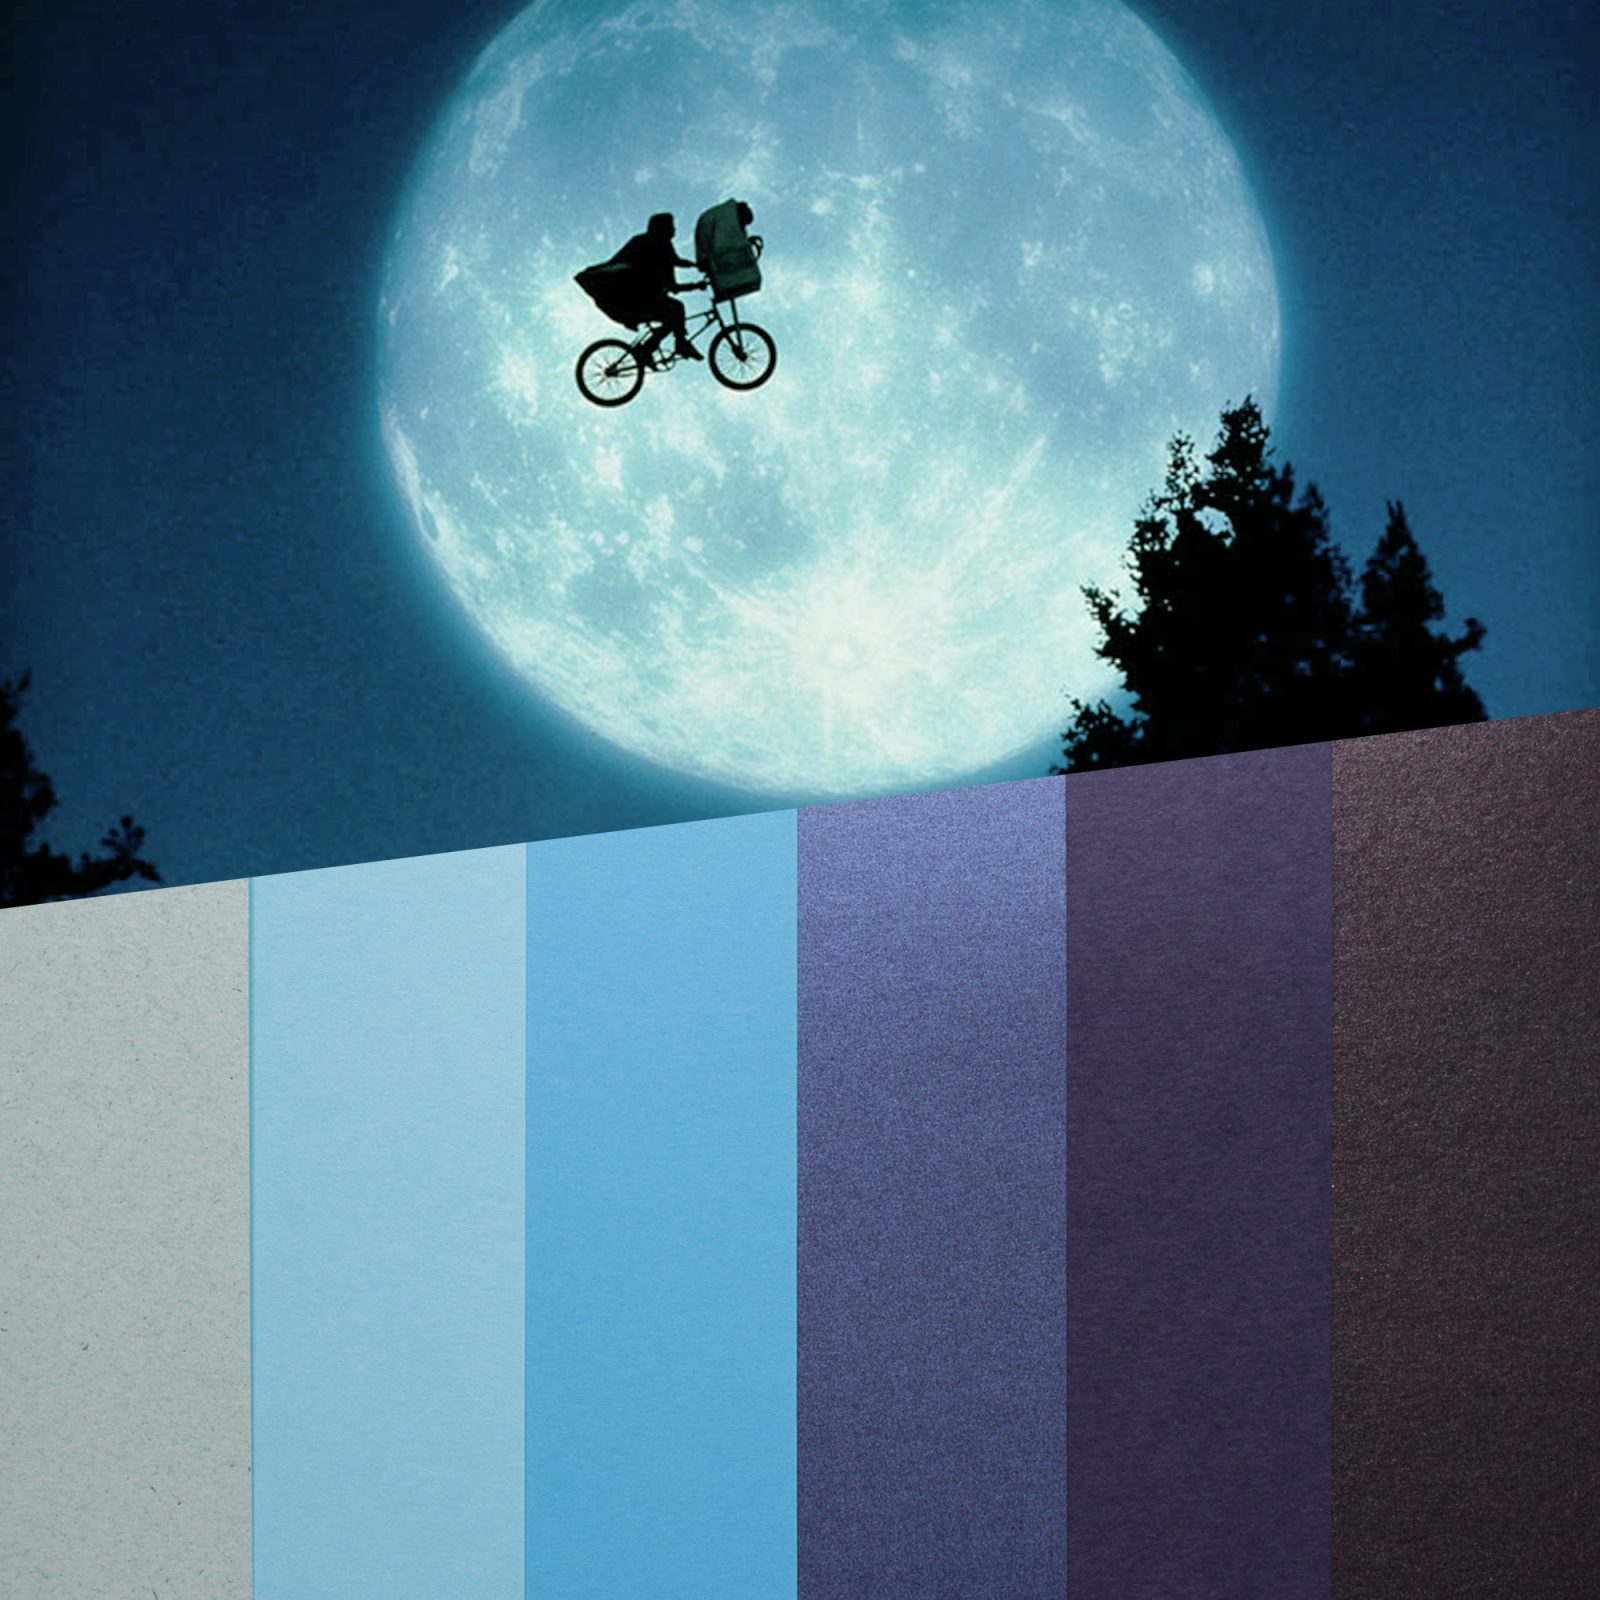 design papers collections inspired by an iconic movie scene - Et